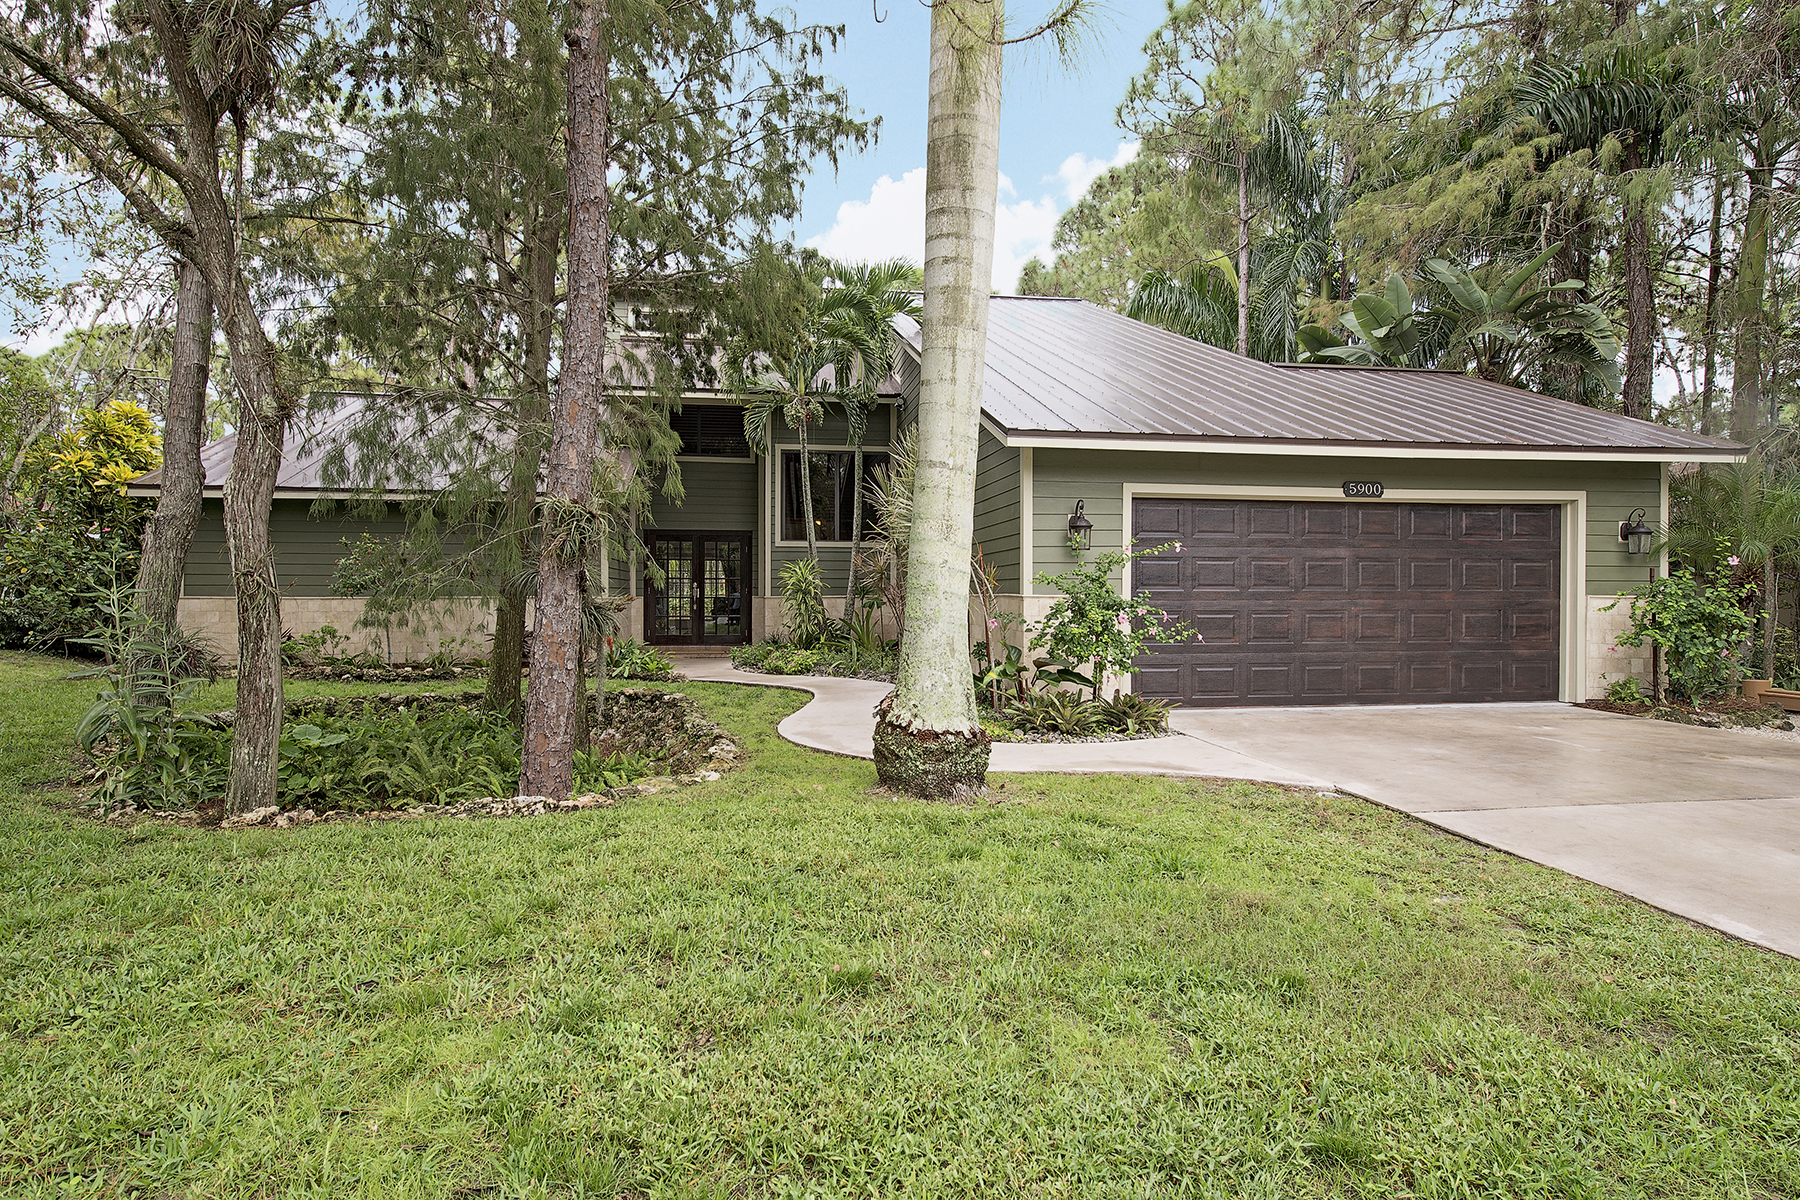 Property For Sale at 5900 Cypress Hollow Way , Naples, FL 34109